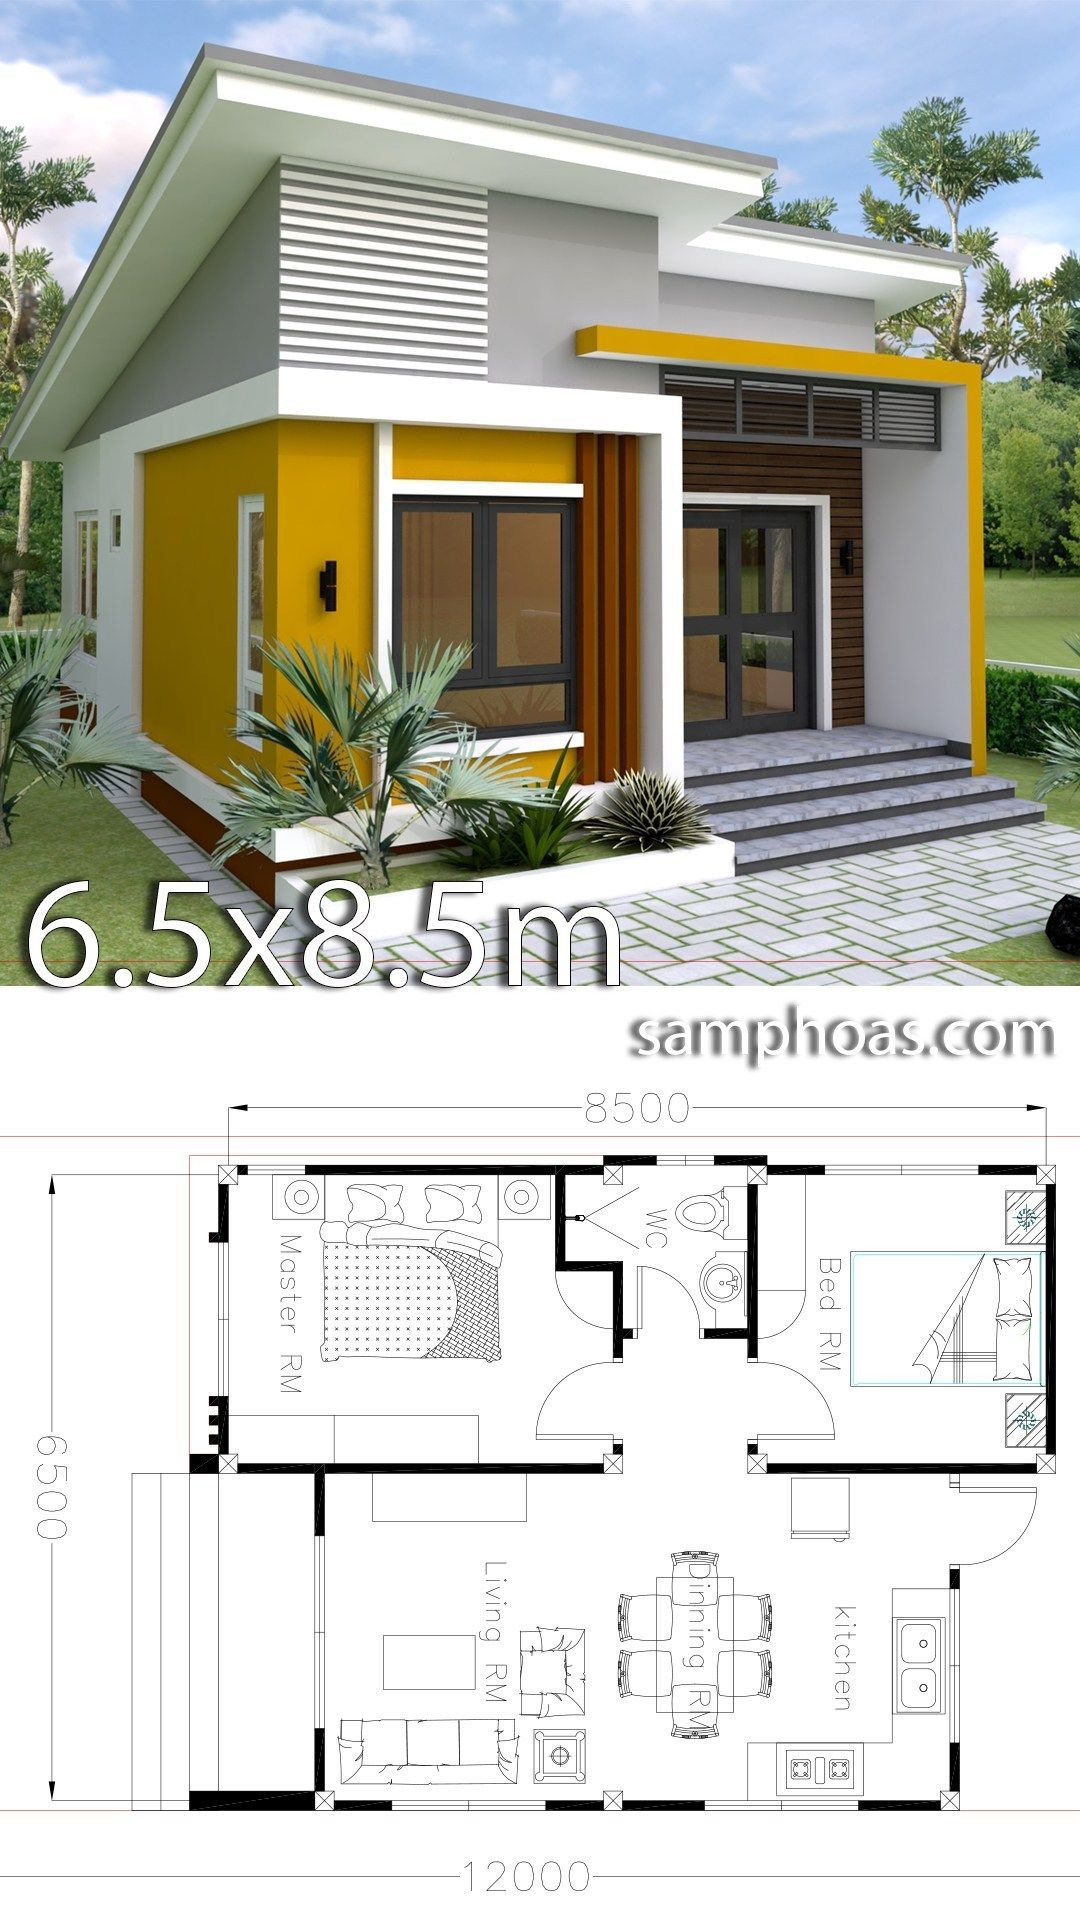 Architecture Simple House Designs New Small Home Design Plan 6 5x8 5m with 2 Bedrooms